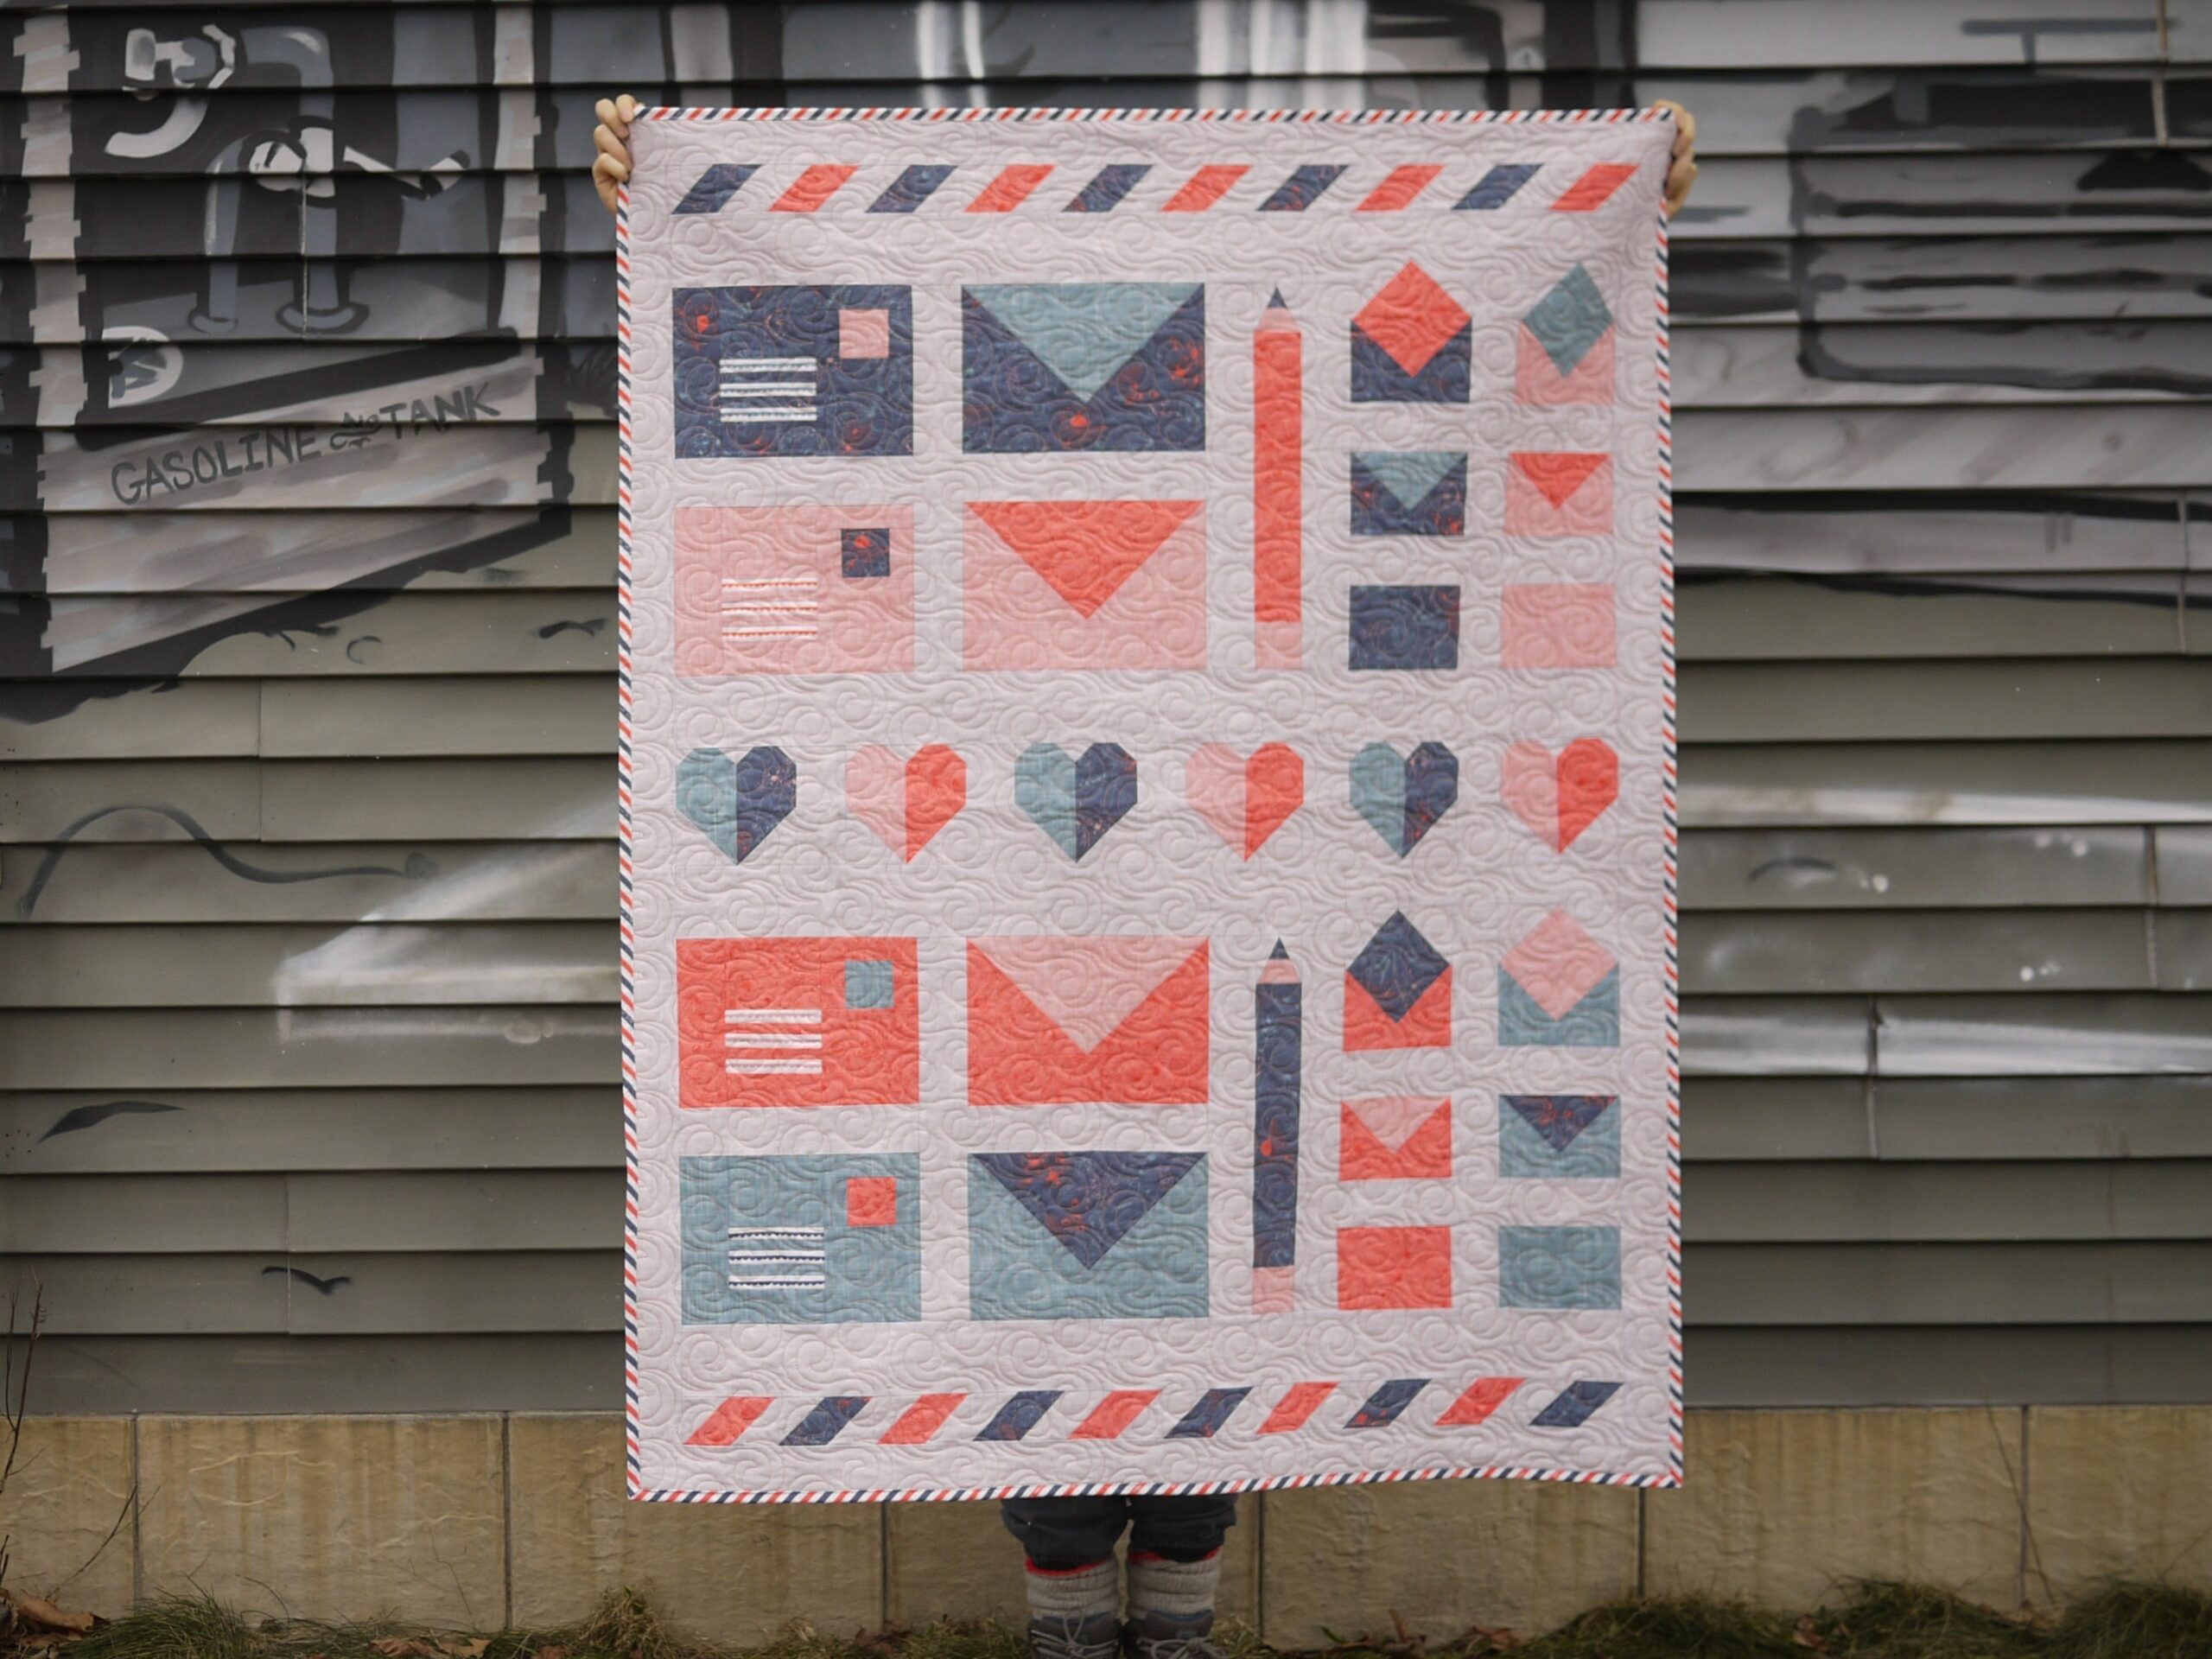 Finished Express Post quilt being held up